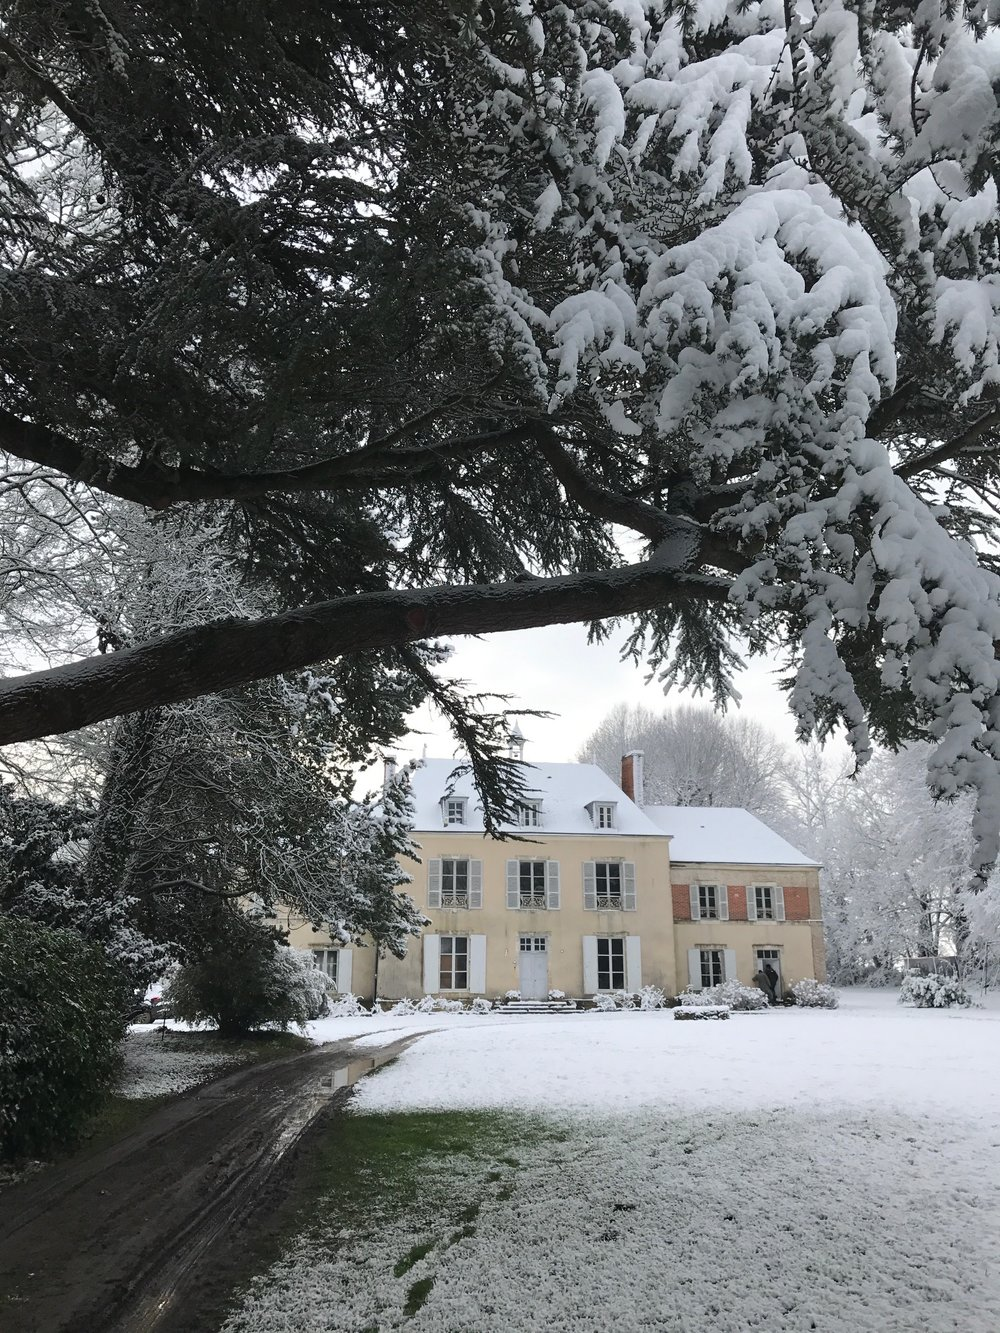 Chateau de la Ruche in the snow